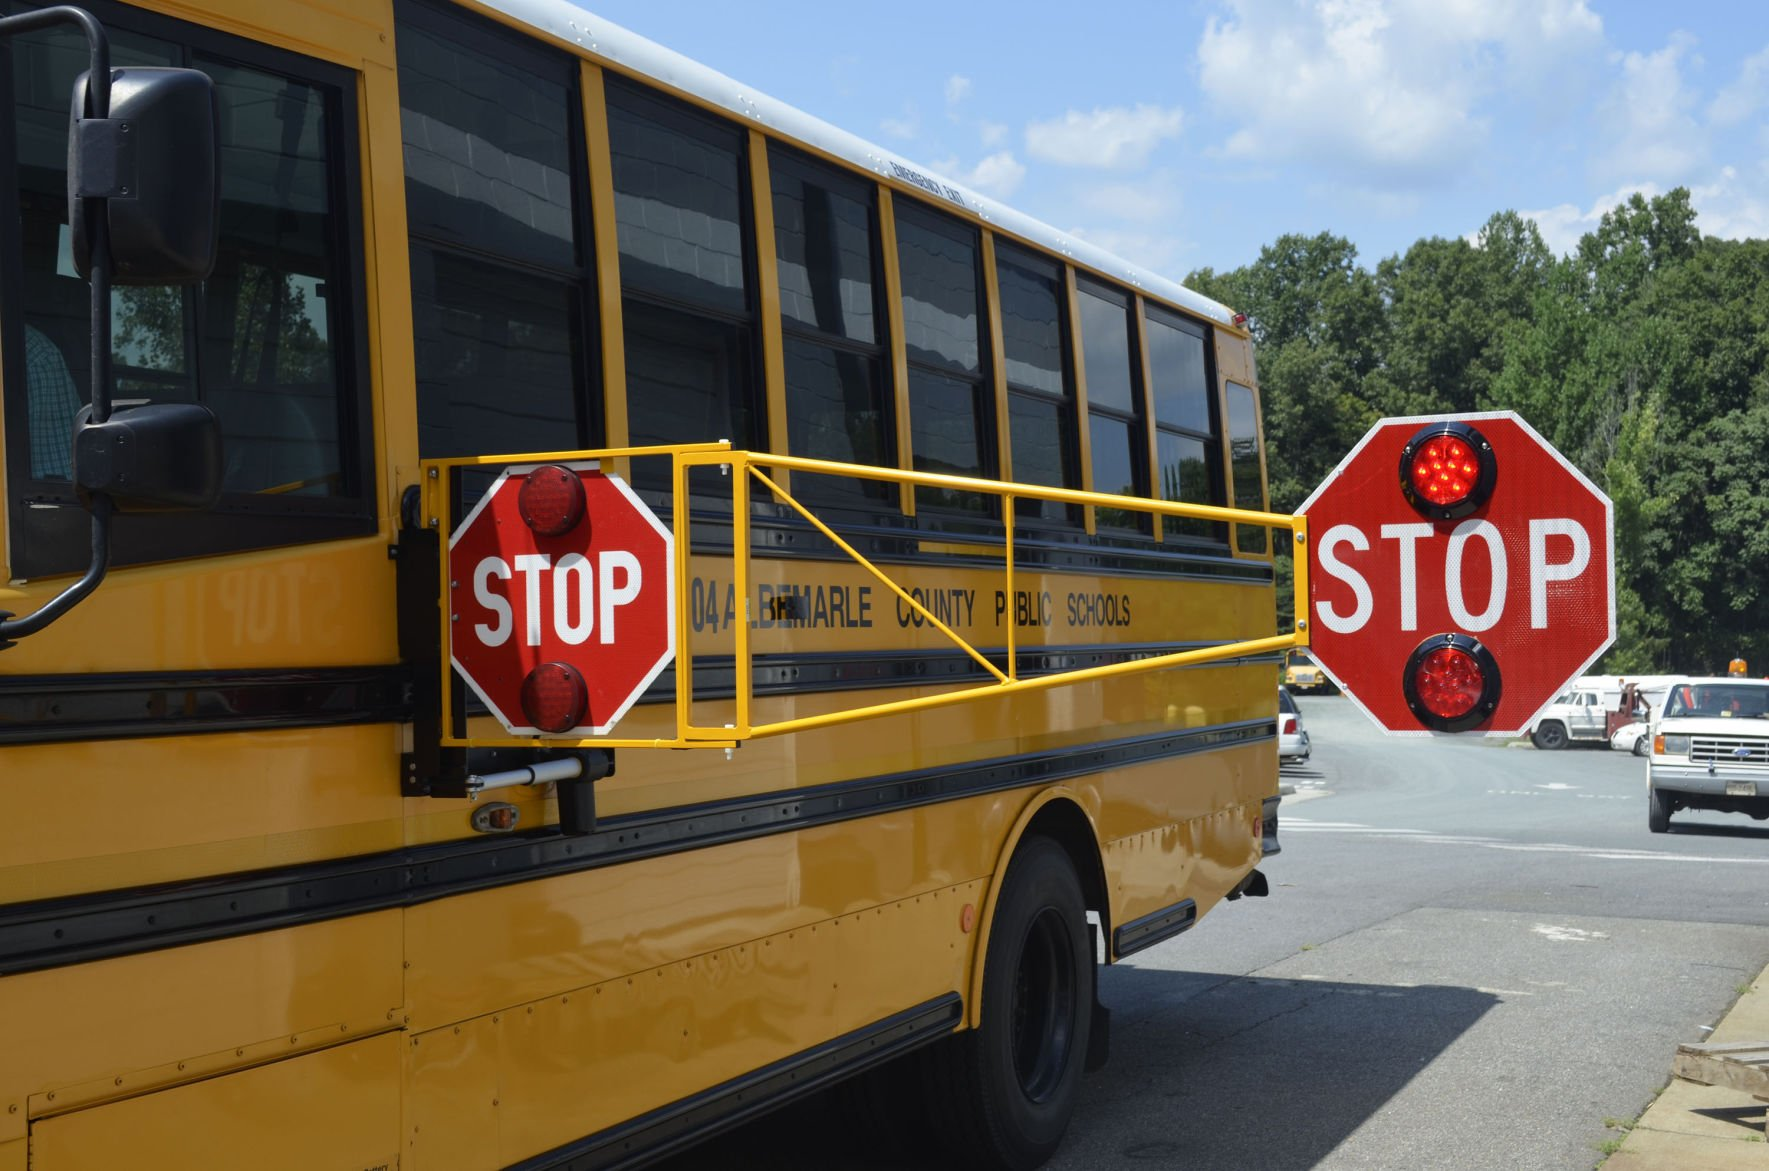 CHP to conduct school bus pedestrian traffic safety operation Wednesday